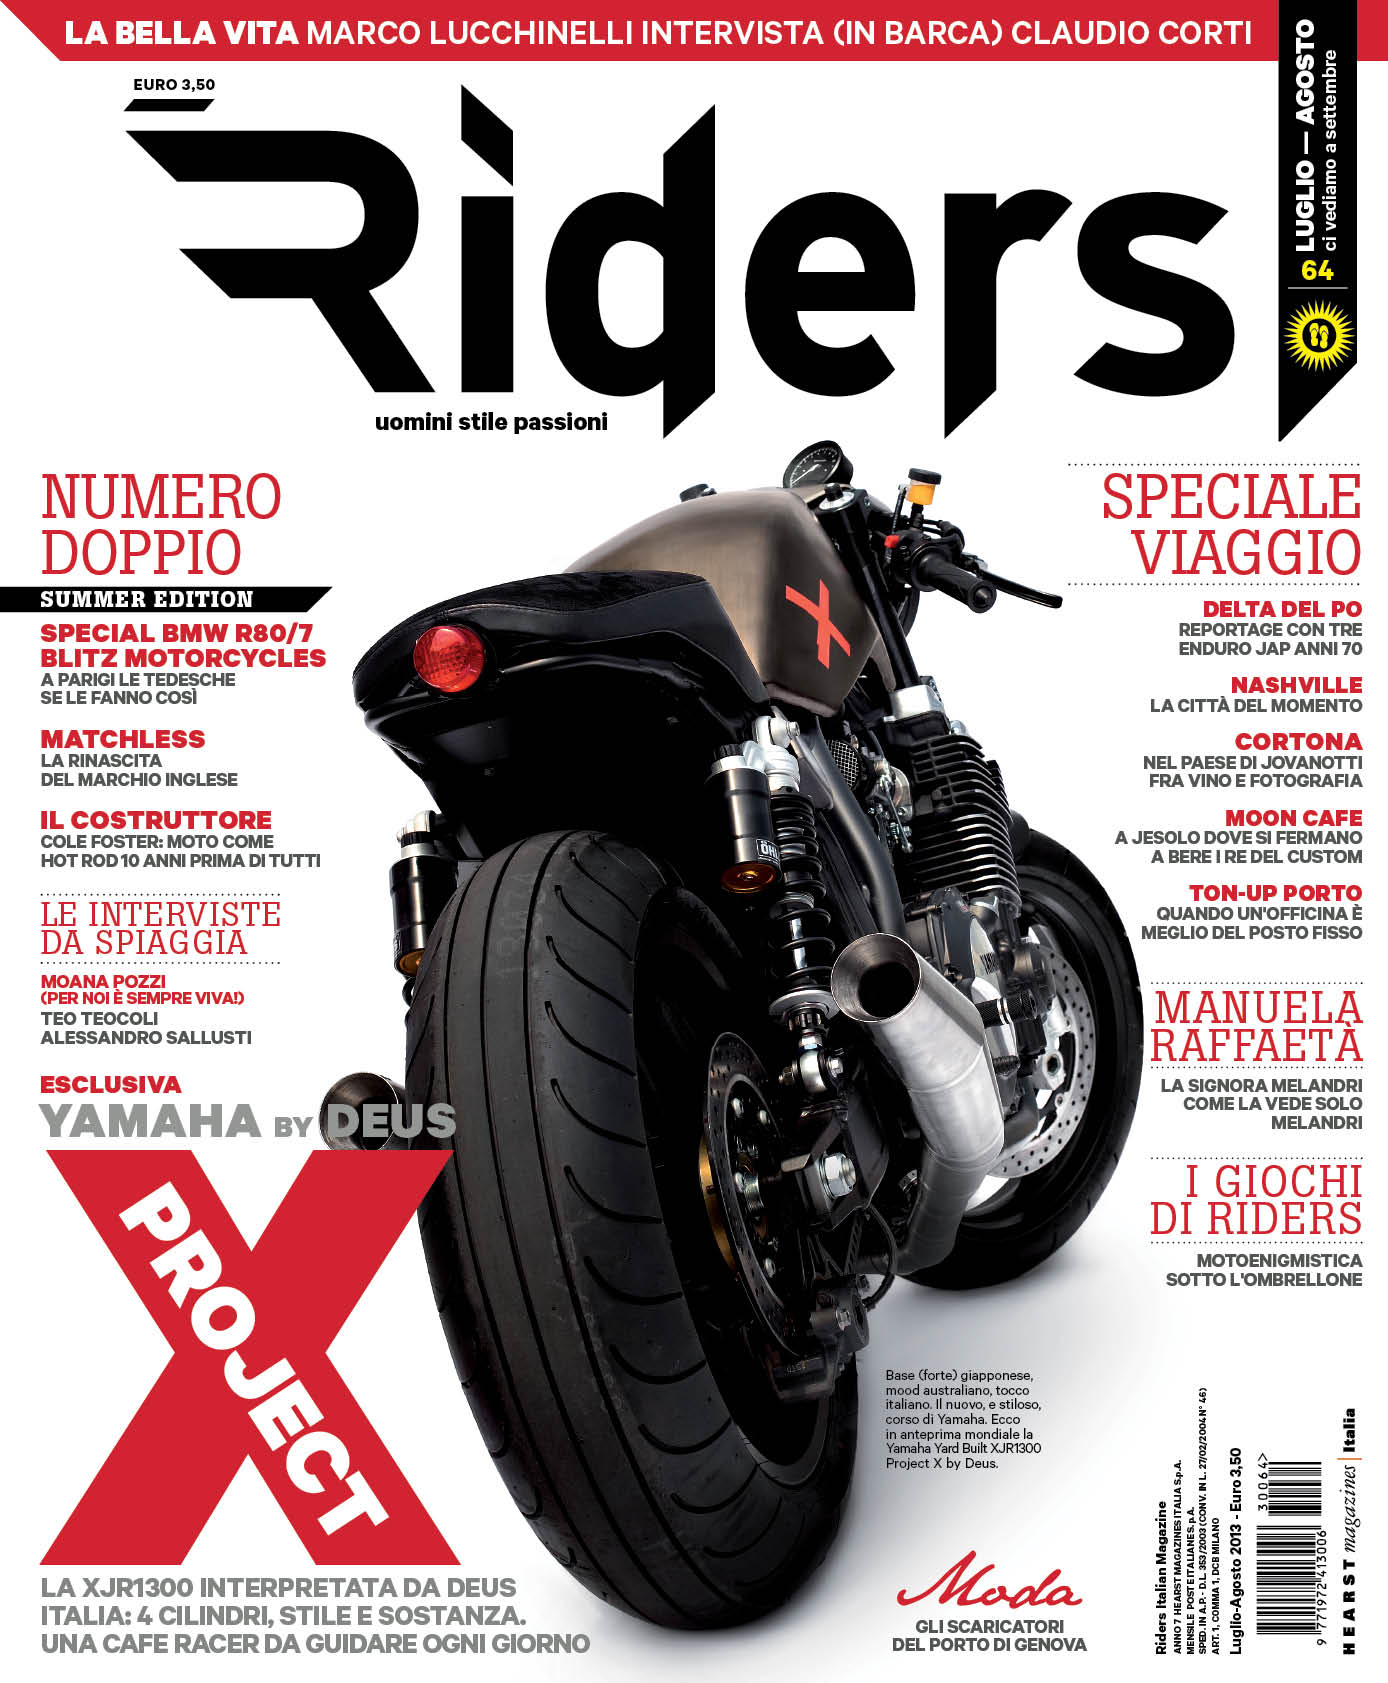 20140407_Riders_Cover64.jpg